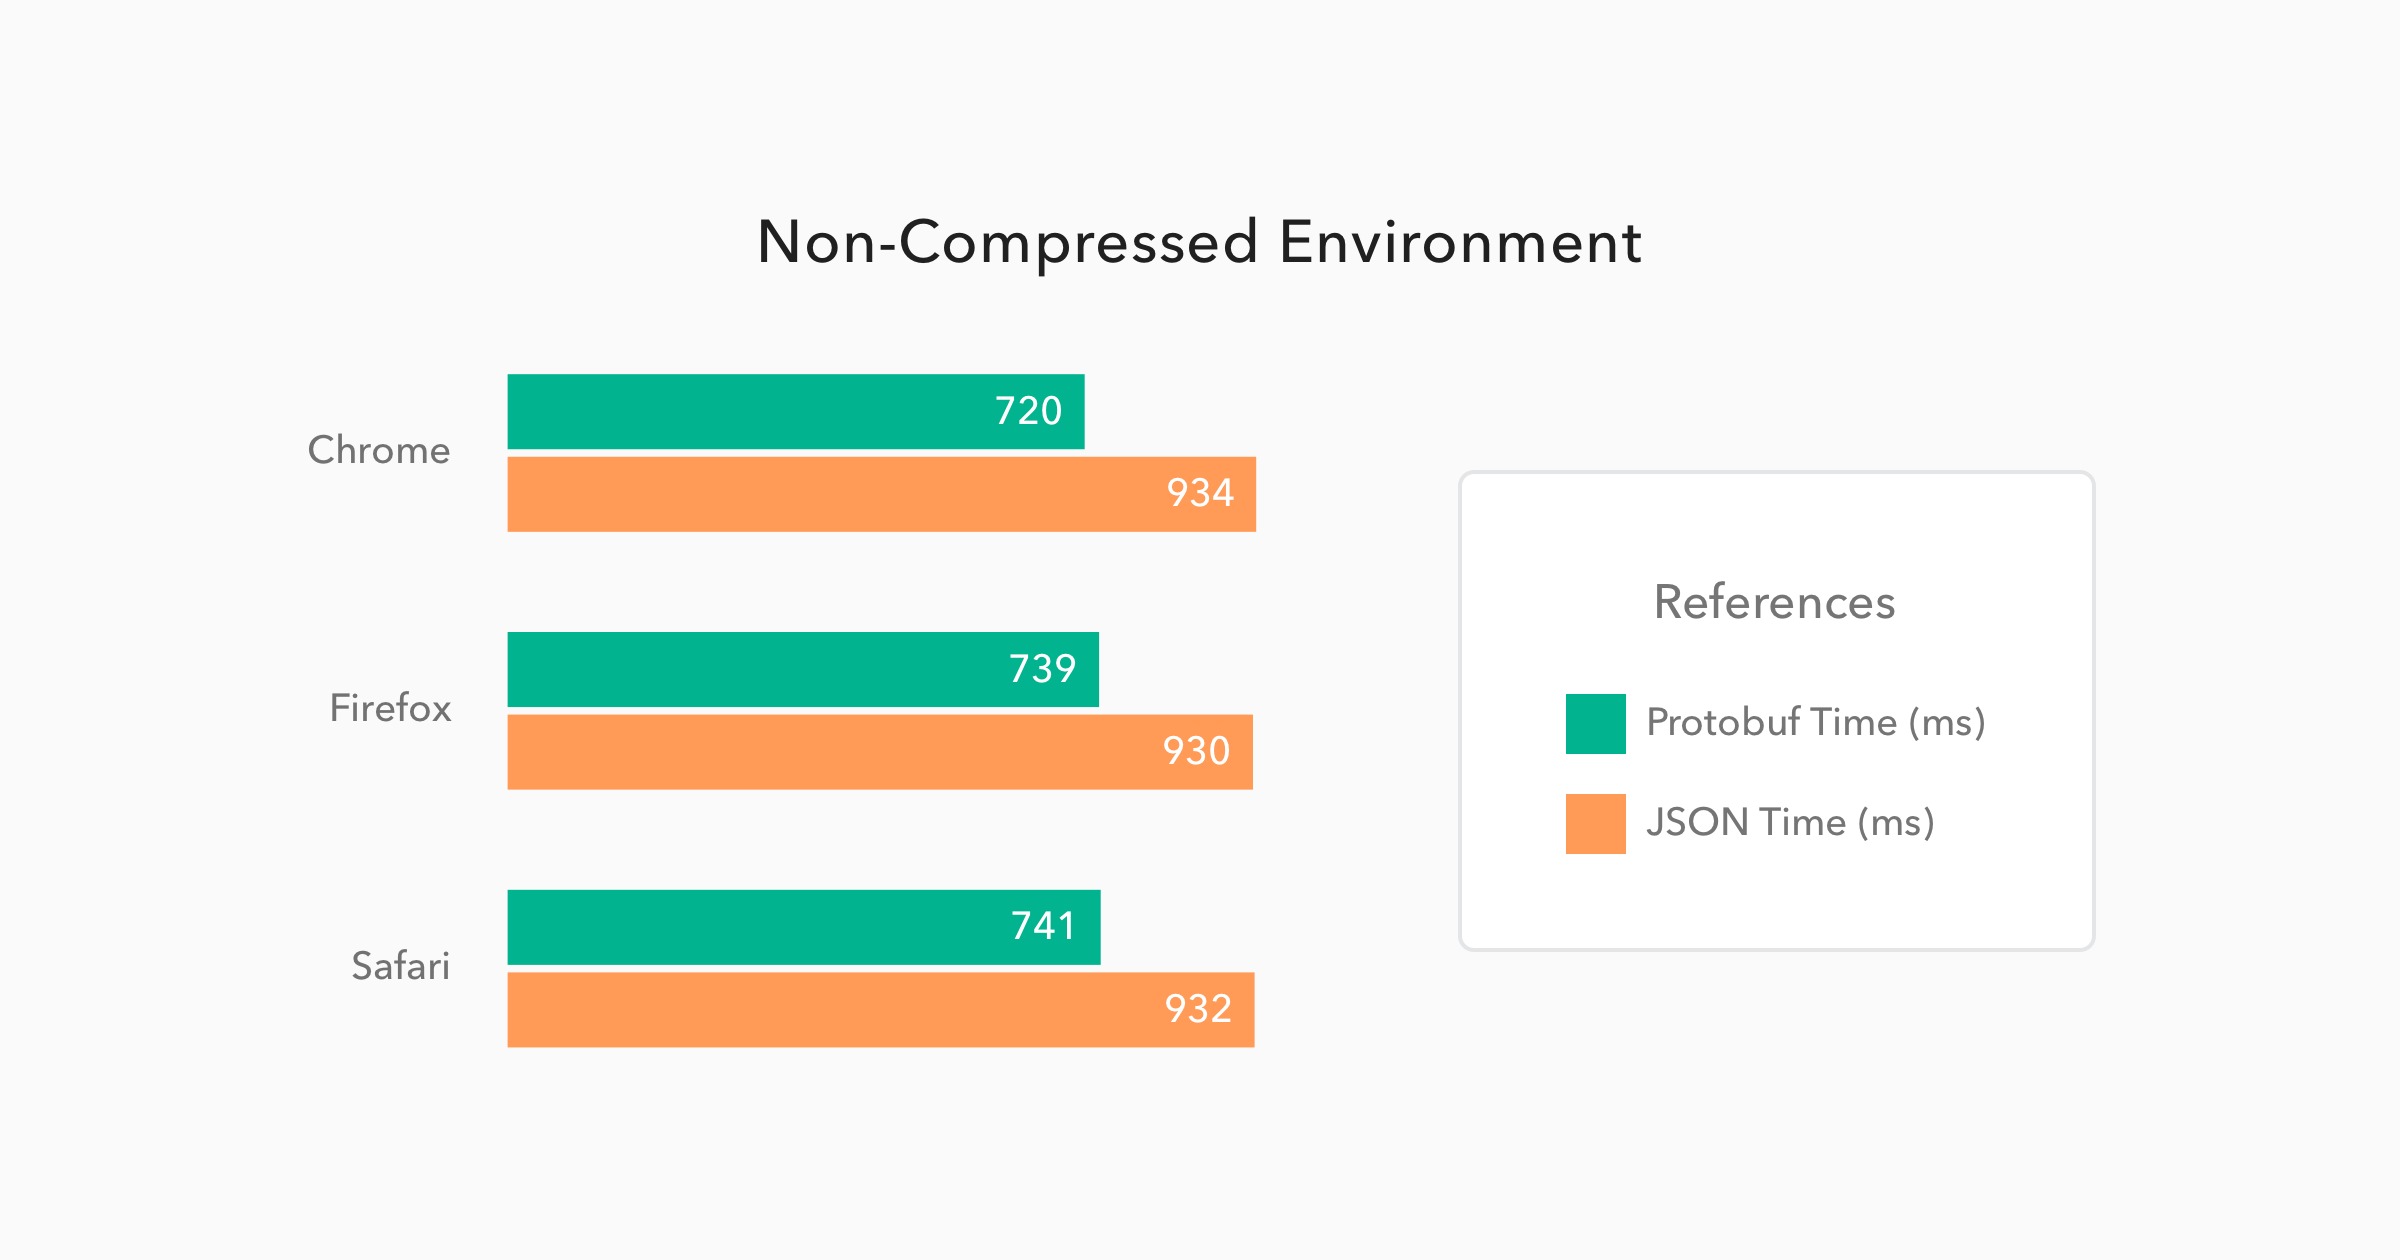 Comparison of Protobuf/JSON performance on non-compressed GET requests